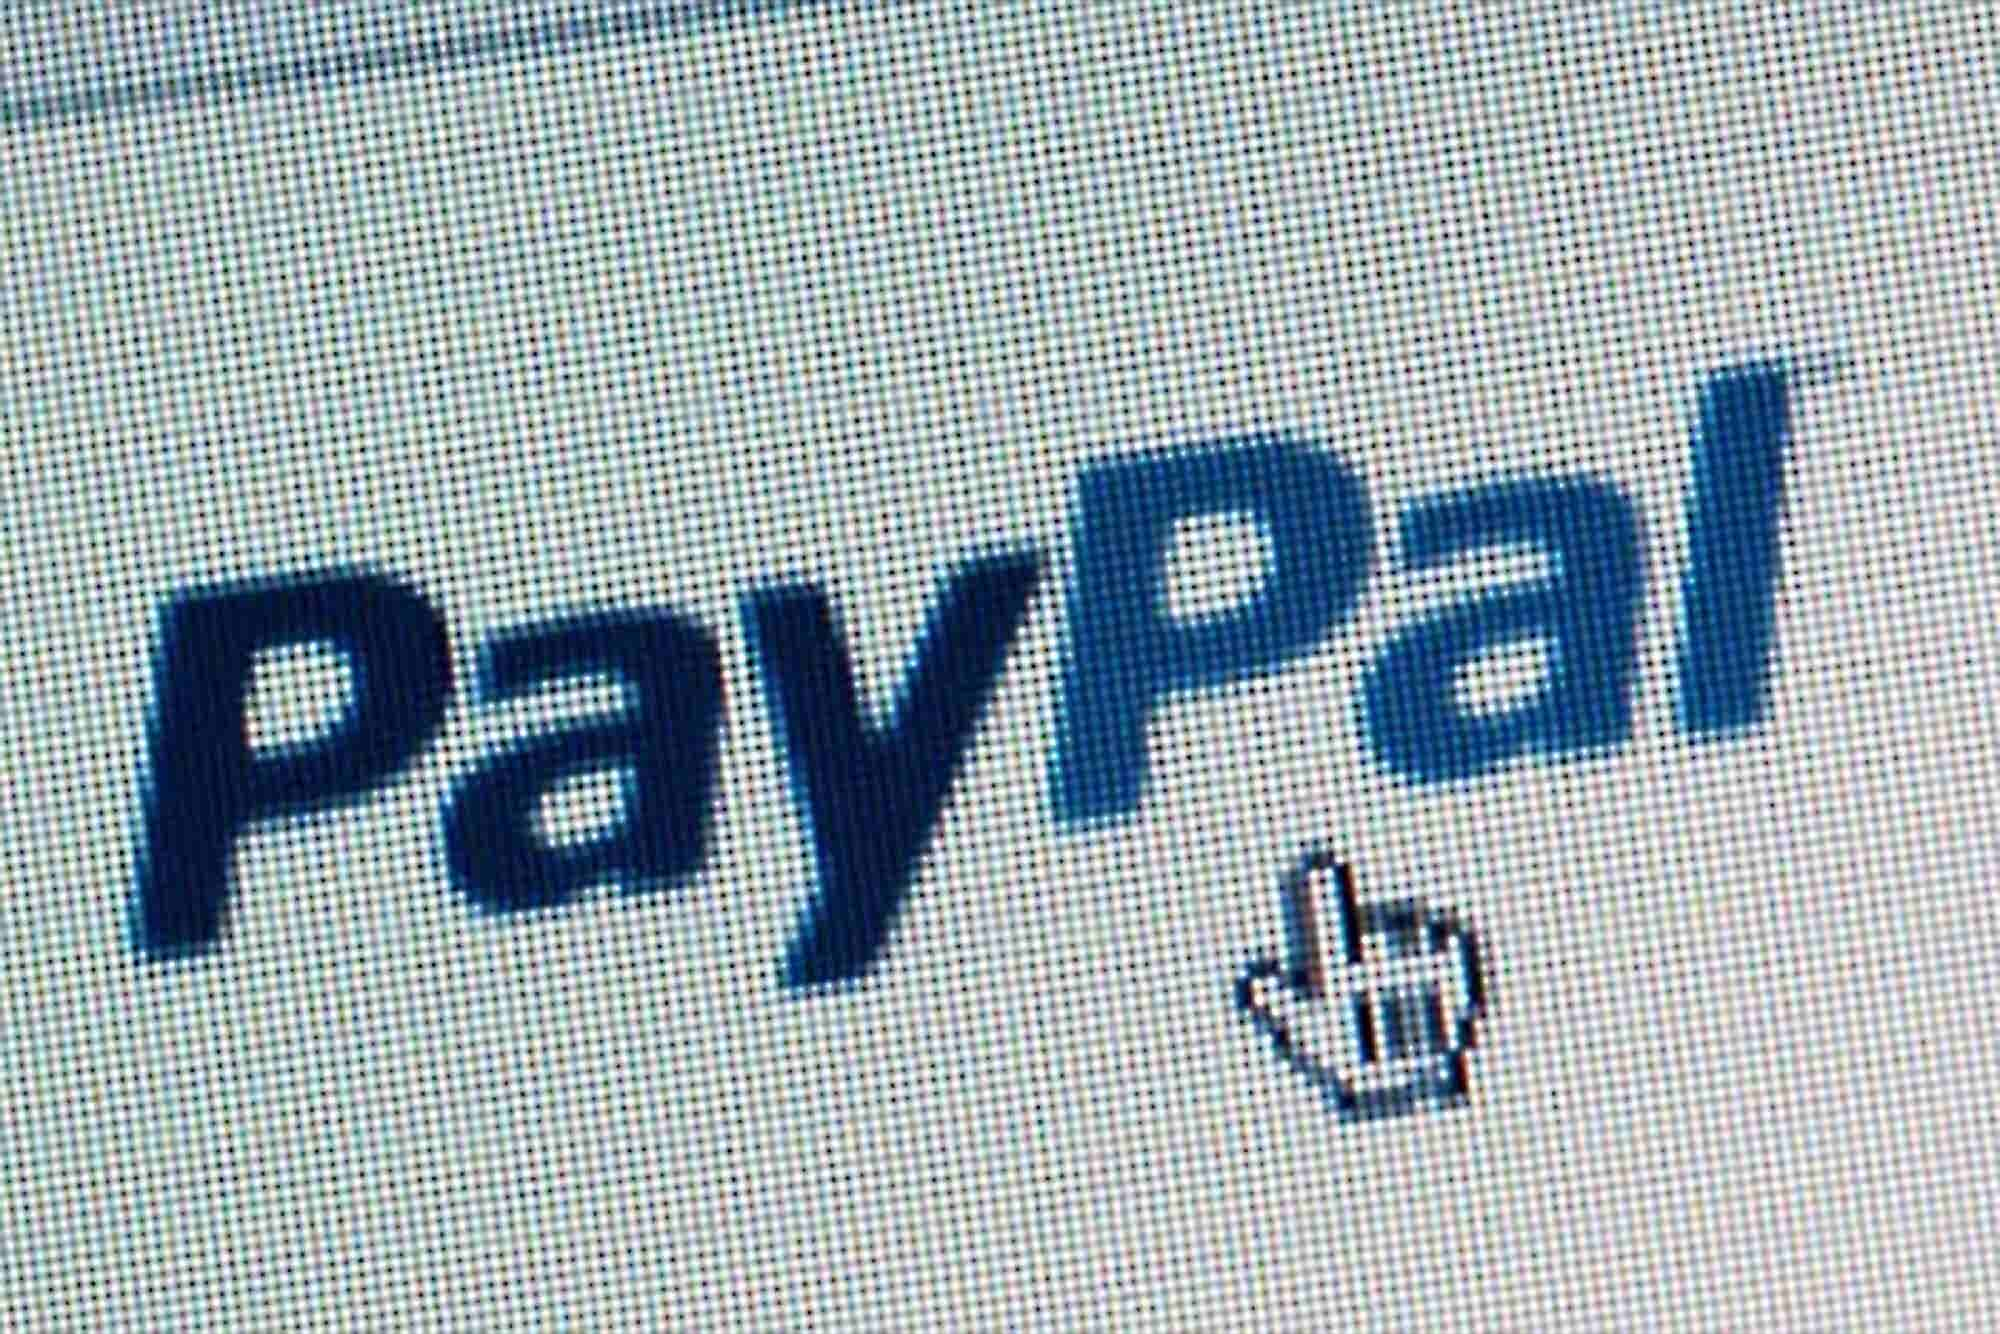 PayPal to Give Small Businesses Access to Working Capital in Minutes